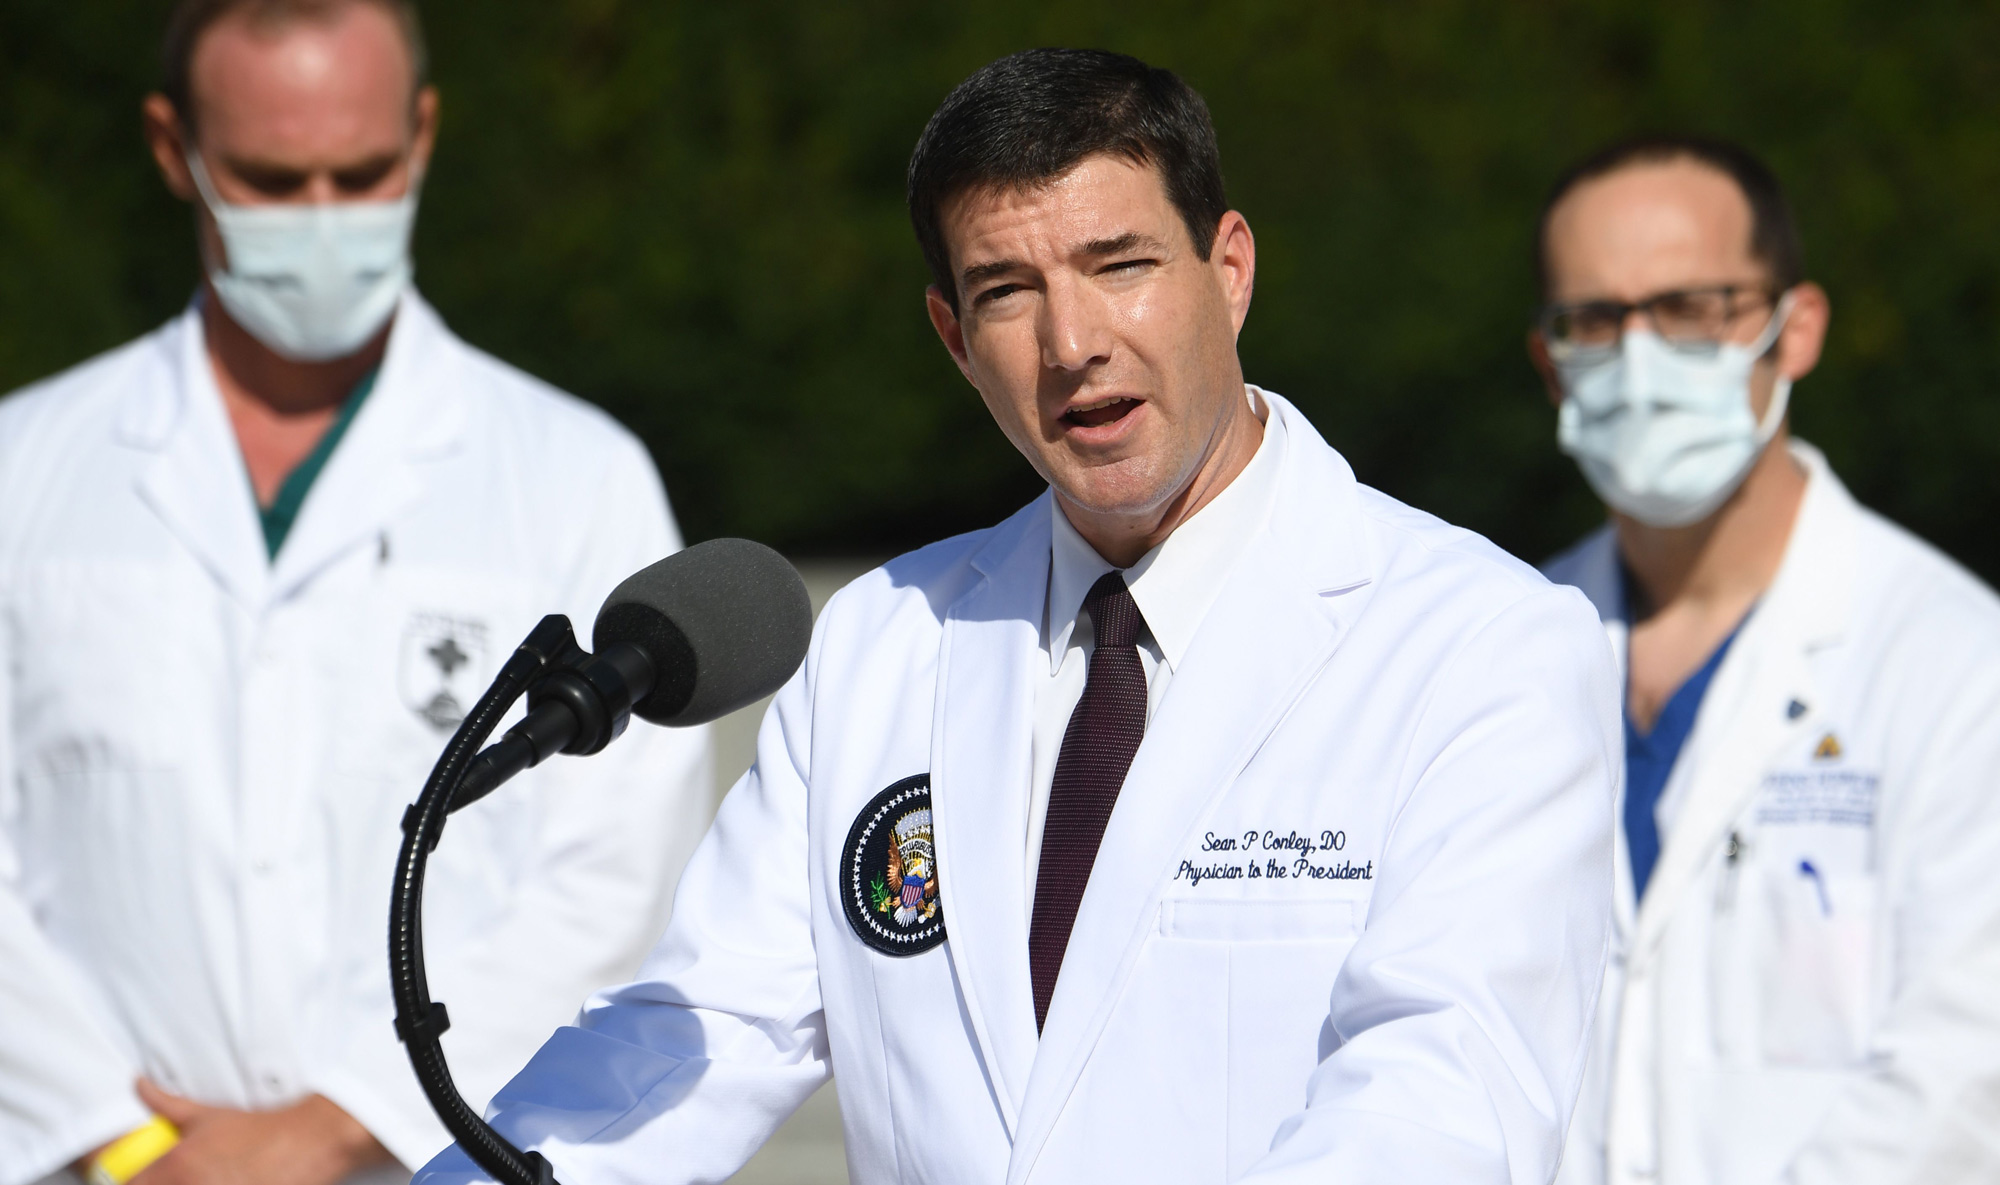 White House physician Dr. Sean Conley speaks on October 5 at Walter Reed Medical Center in Bethesda, Maryland.